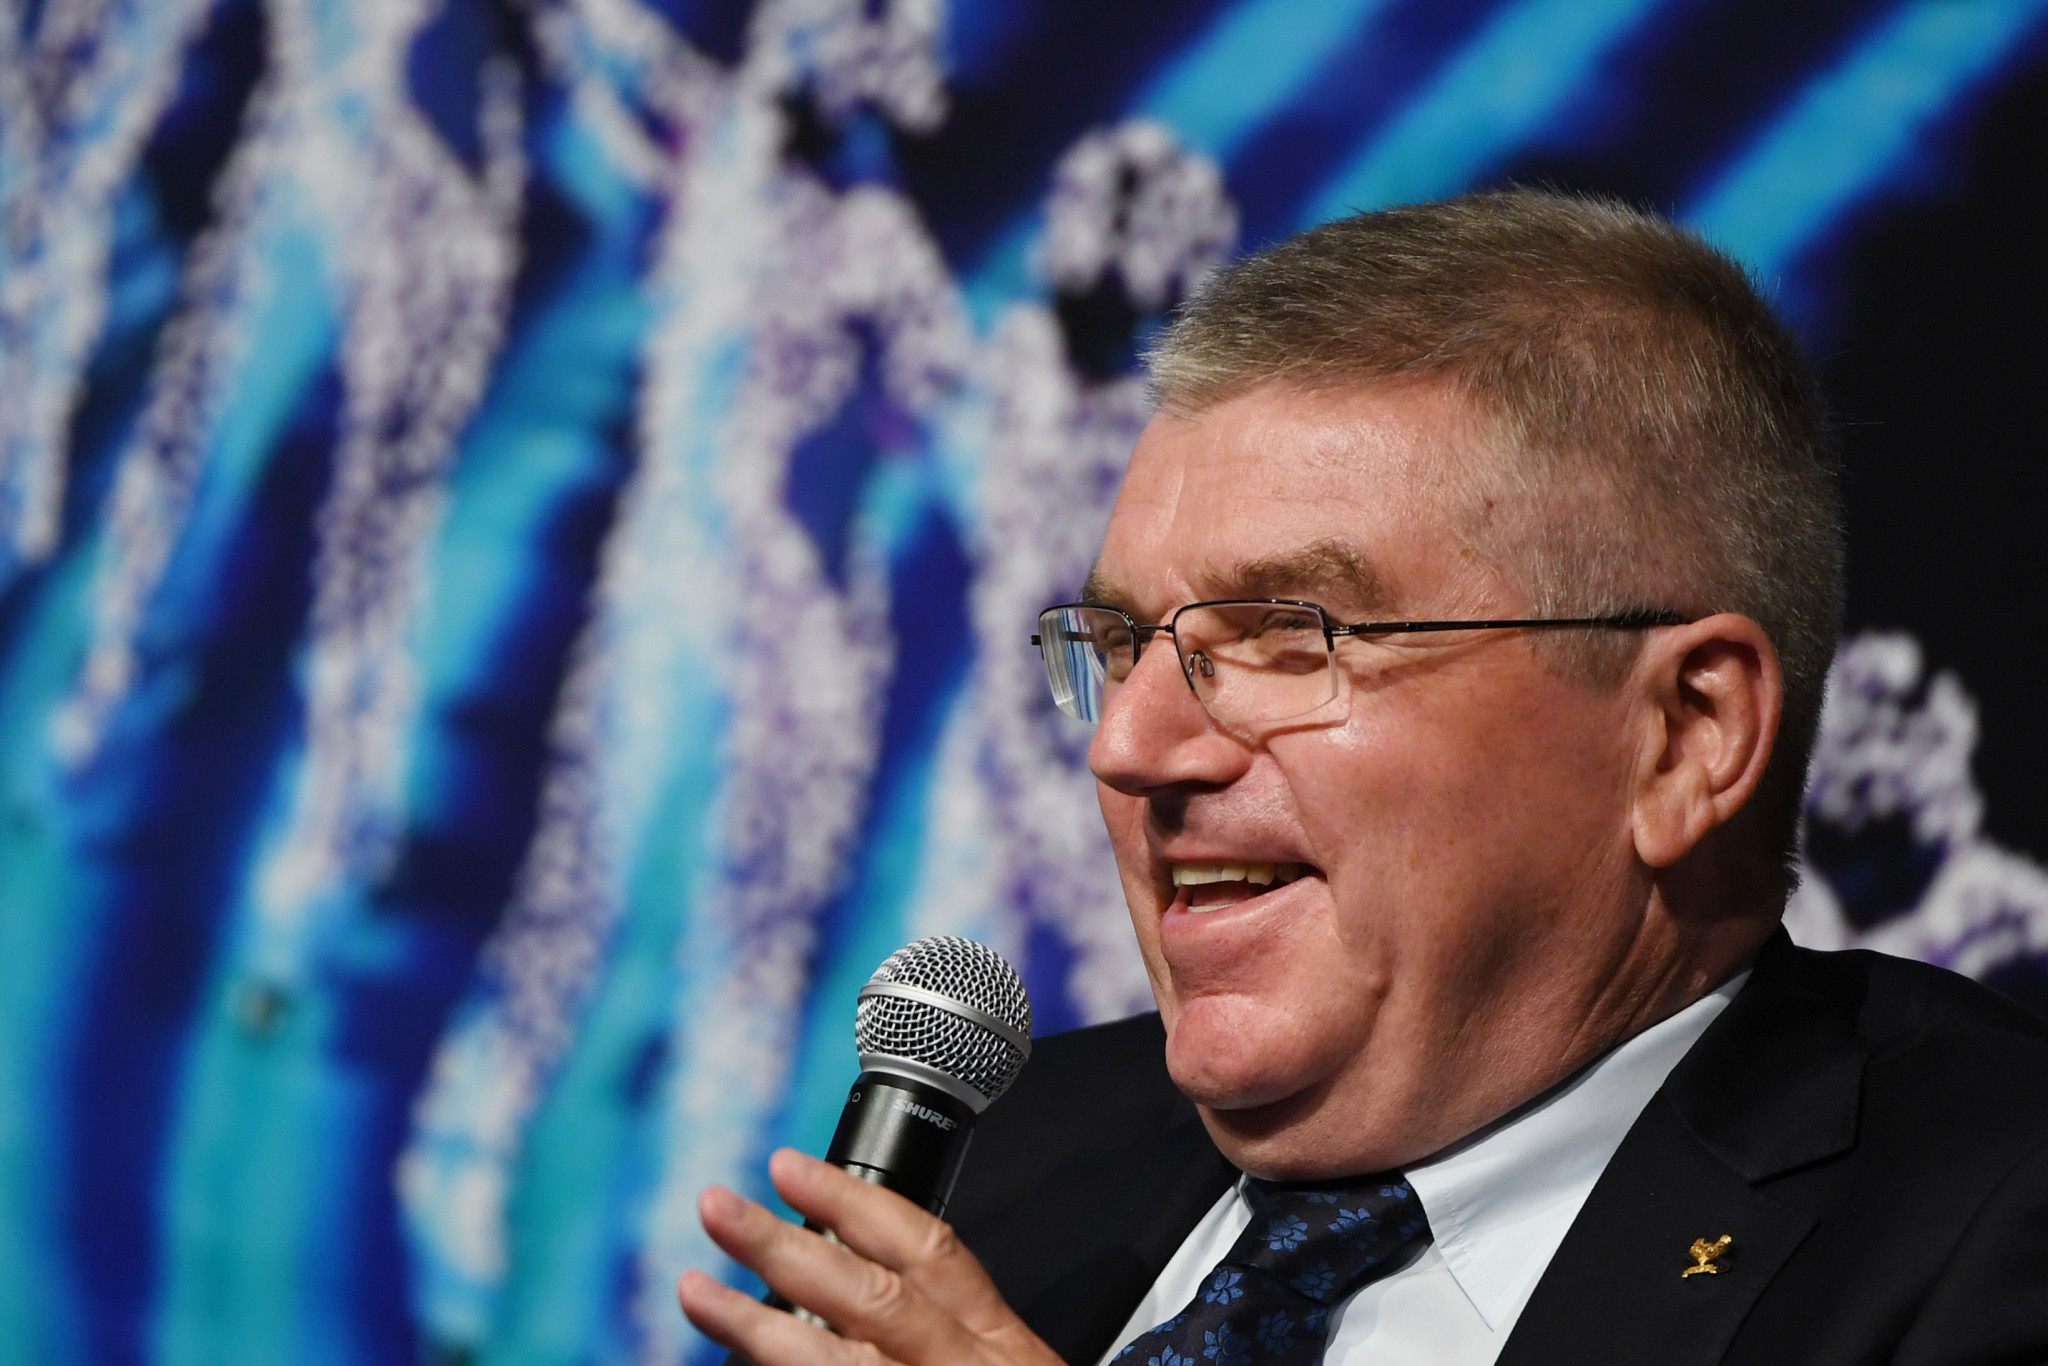 IOC President Thomas Bach claimed in May that the chances of winning did not play a role in their decision to appeal the CAS verdicts ©Getty Images